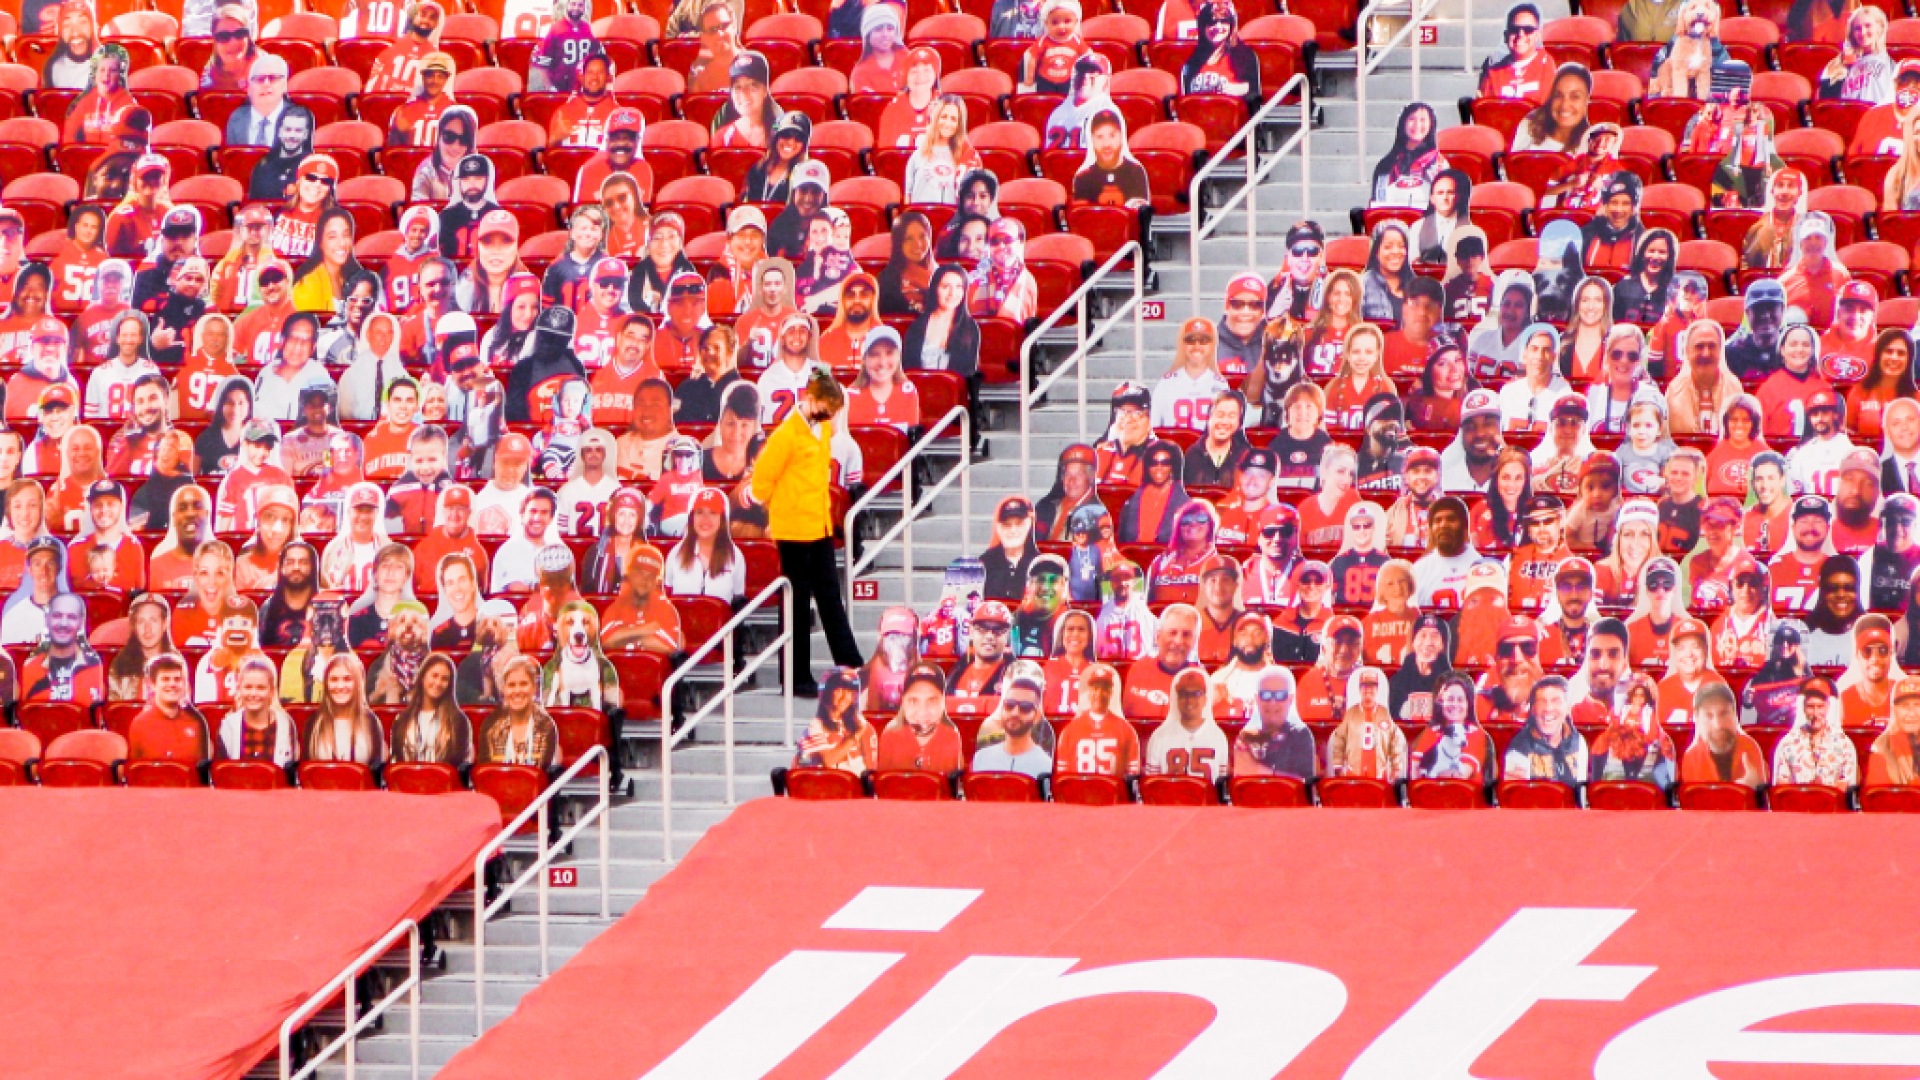 A lone stadium usher stands among rows of plastic fan cut-outs placed in empty seats